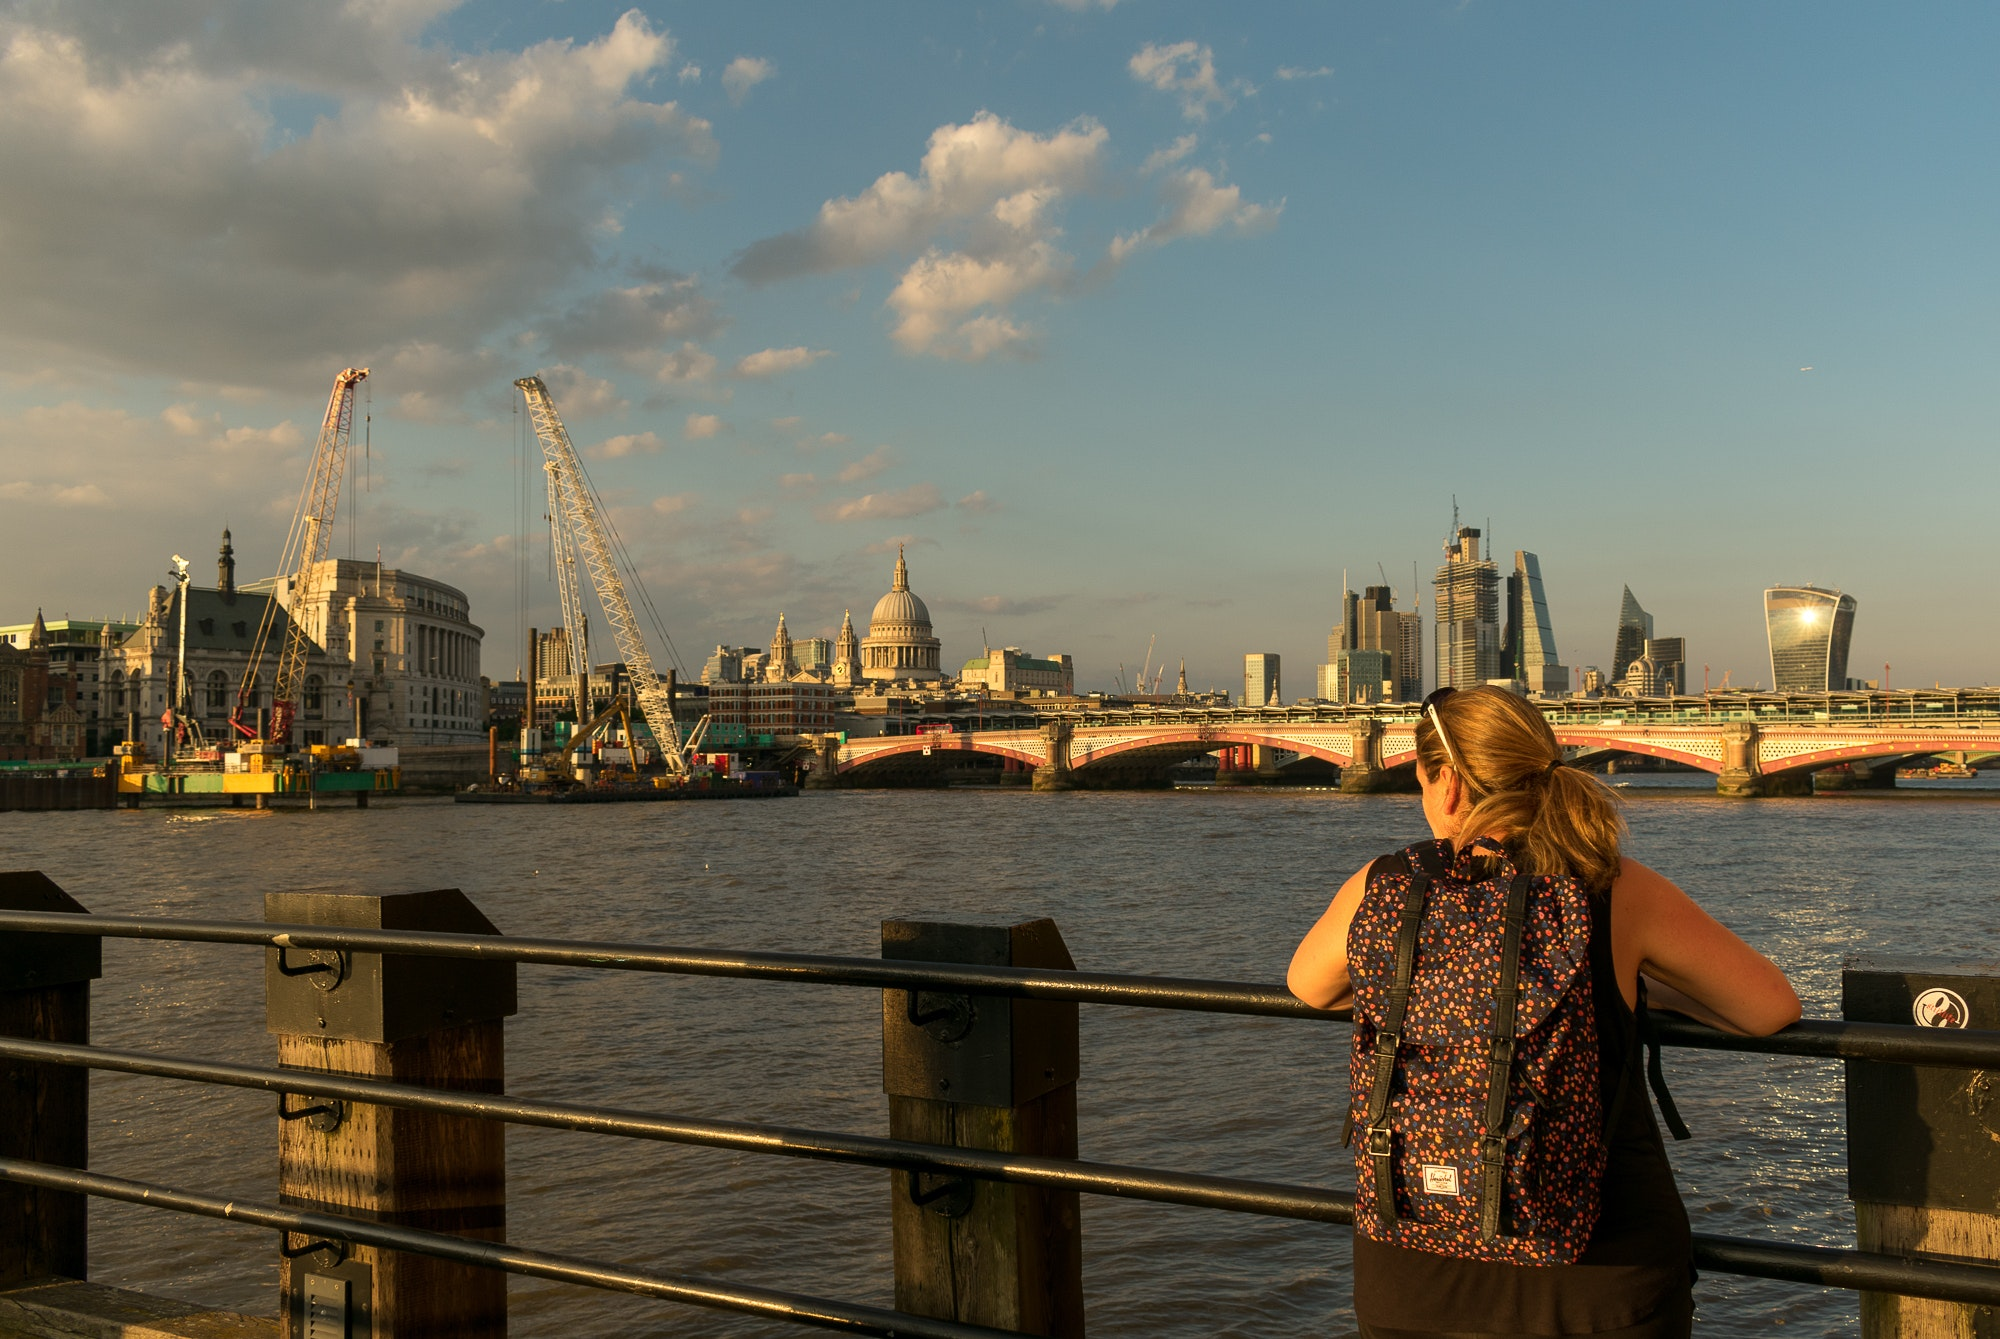 Catching the sunset in London